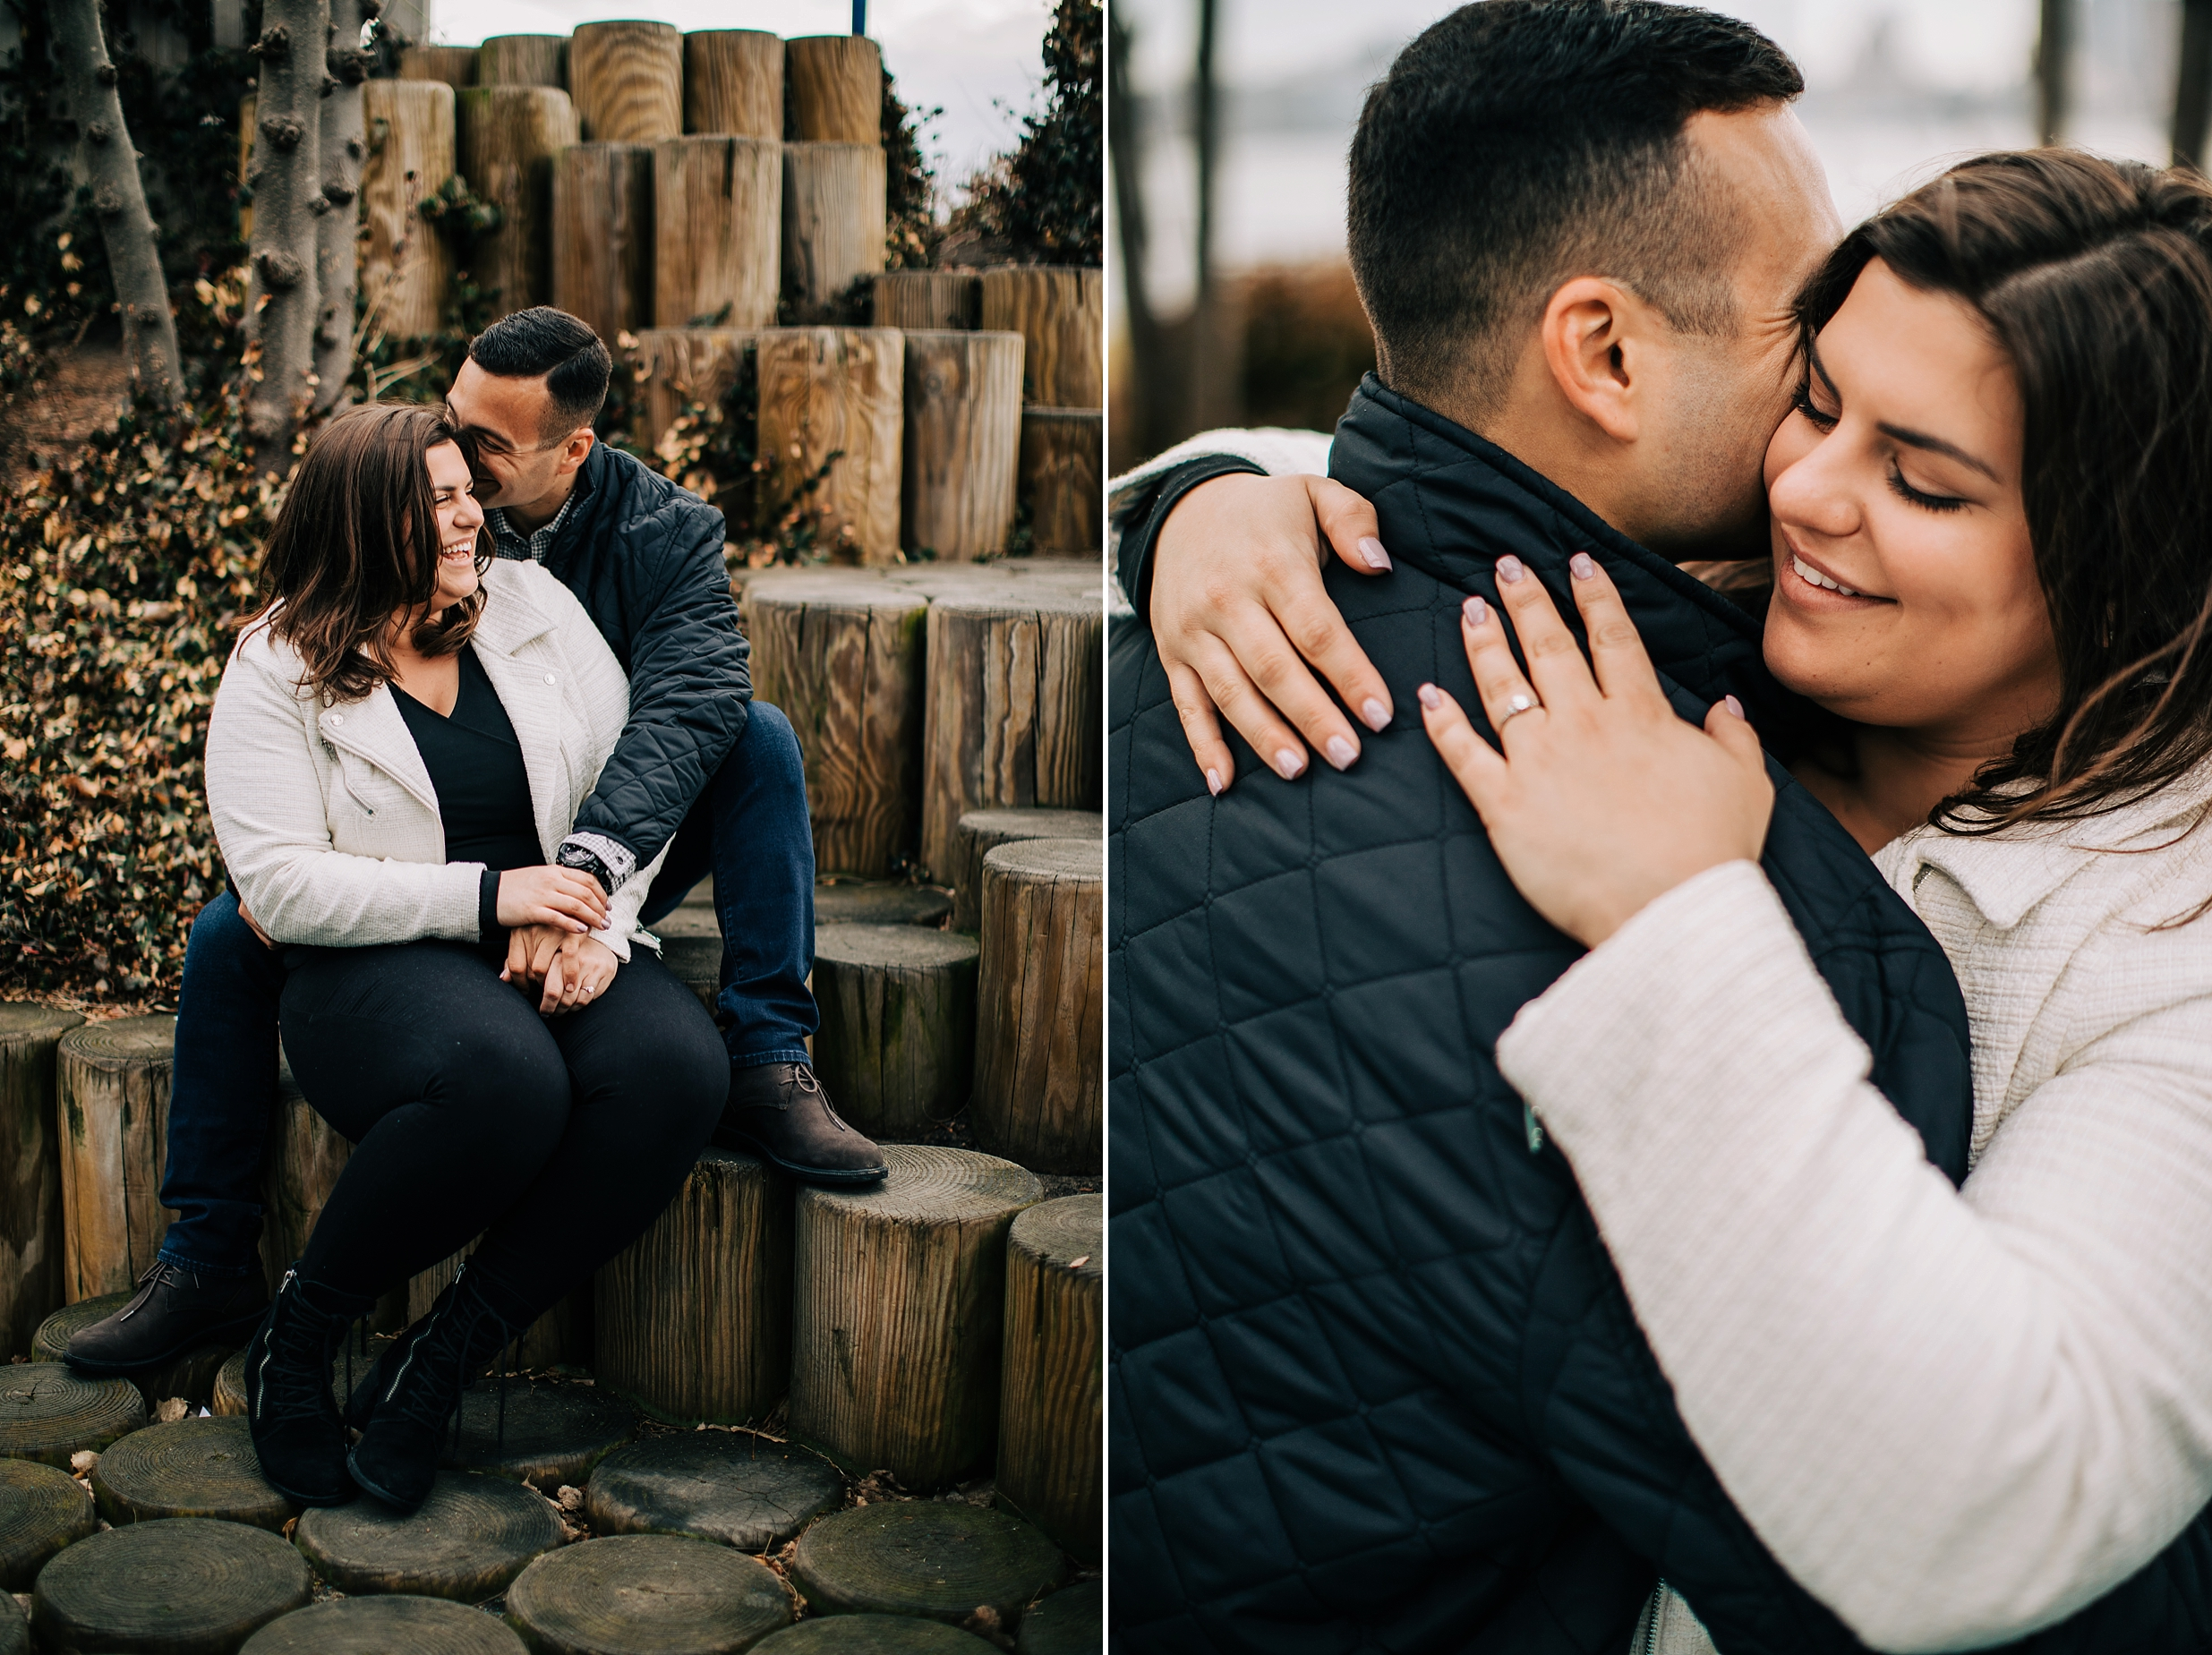 hoboken-engagement-session-pilot-winter-rainy-wedding_0007.jpg